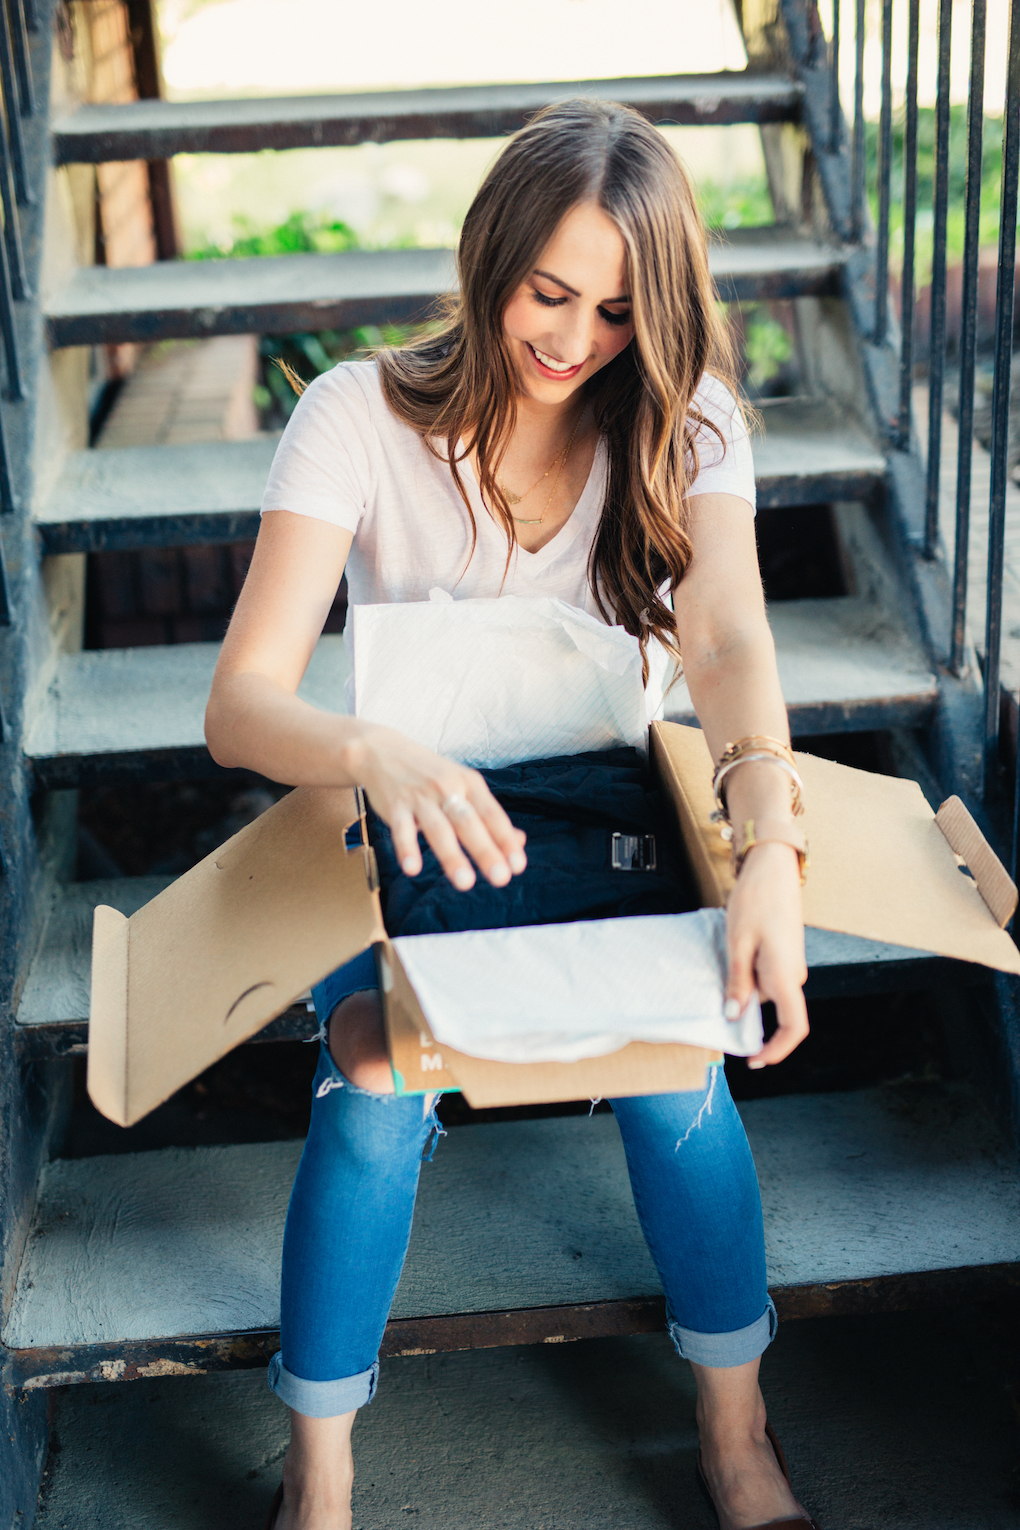 Girl with long brown curled hair in white madewell v-neck unboxing thredup box